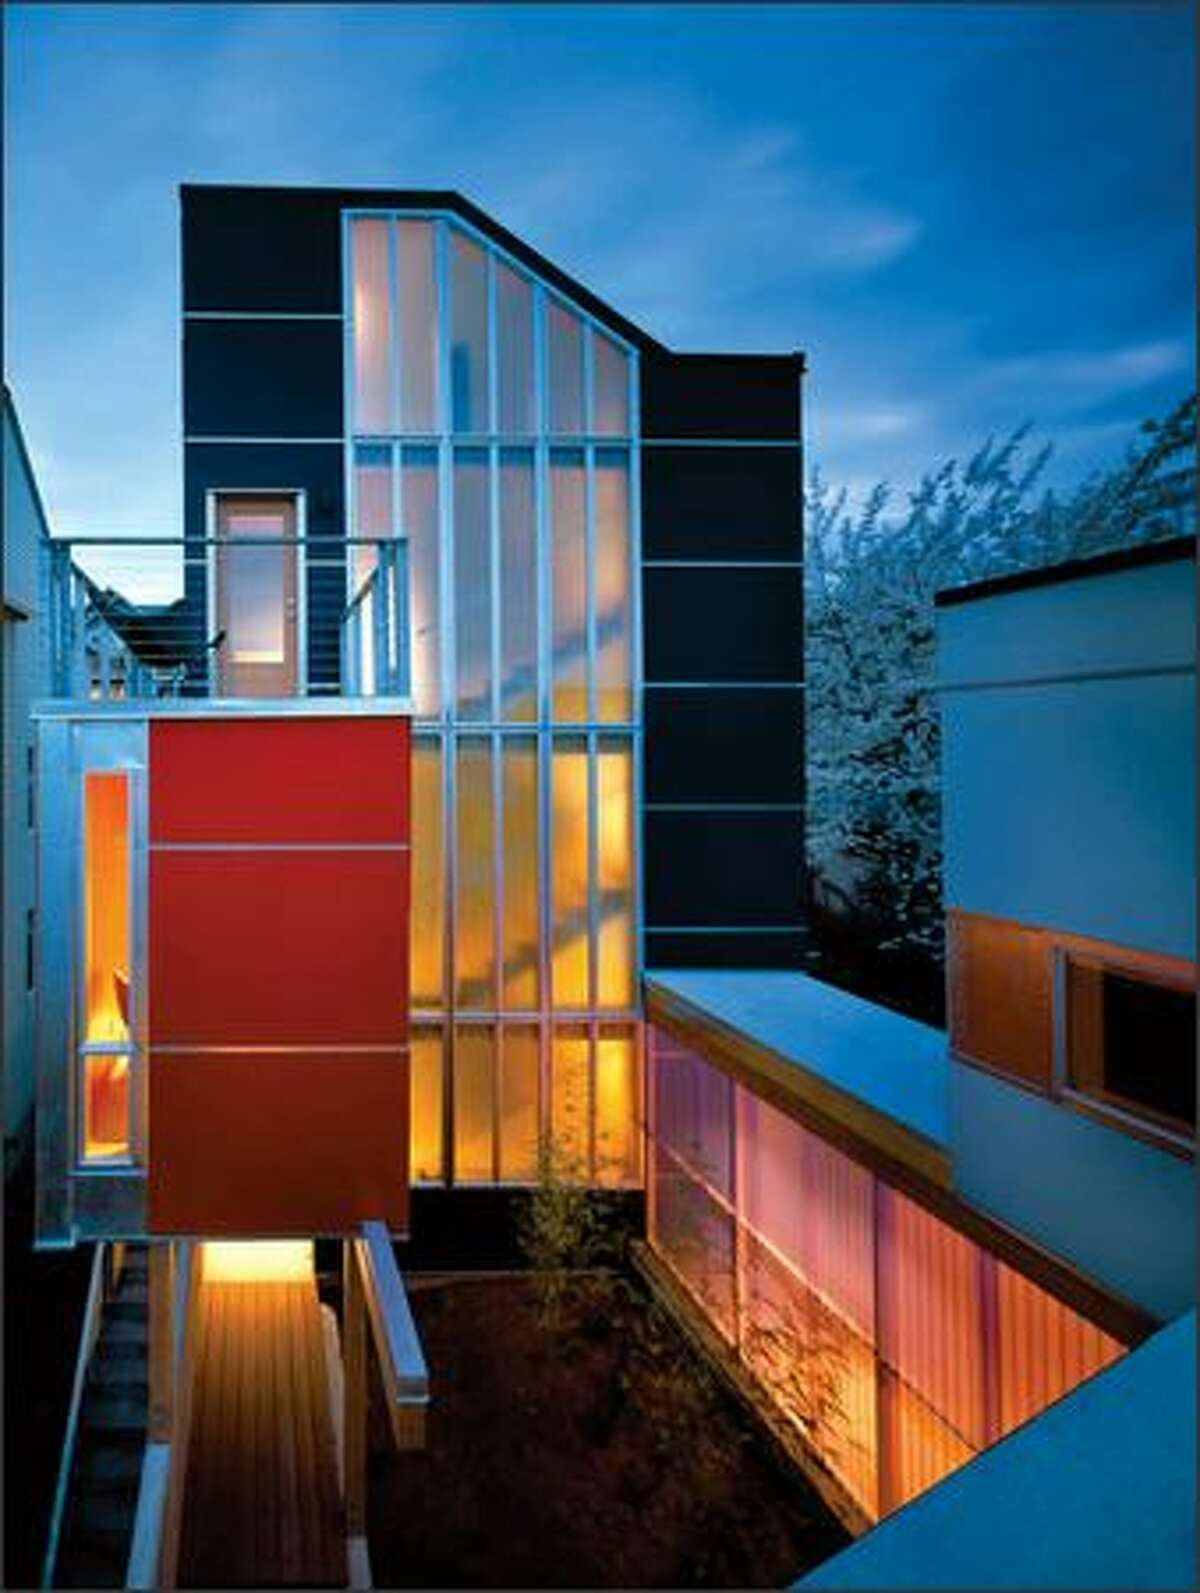 The perky, colorful stair tower of the